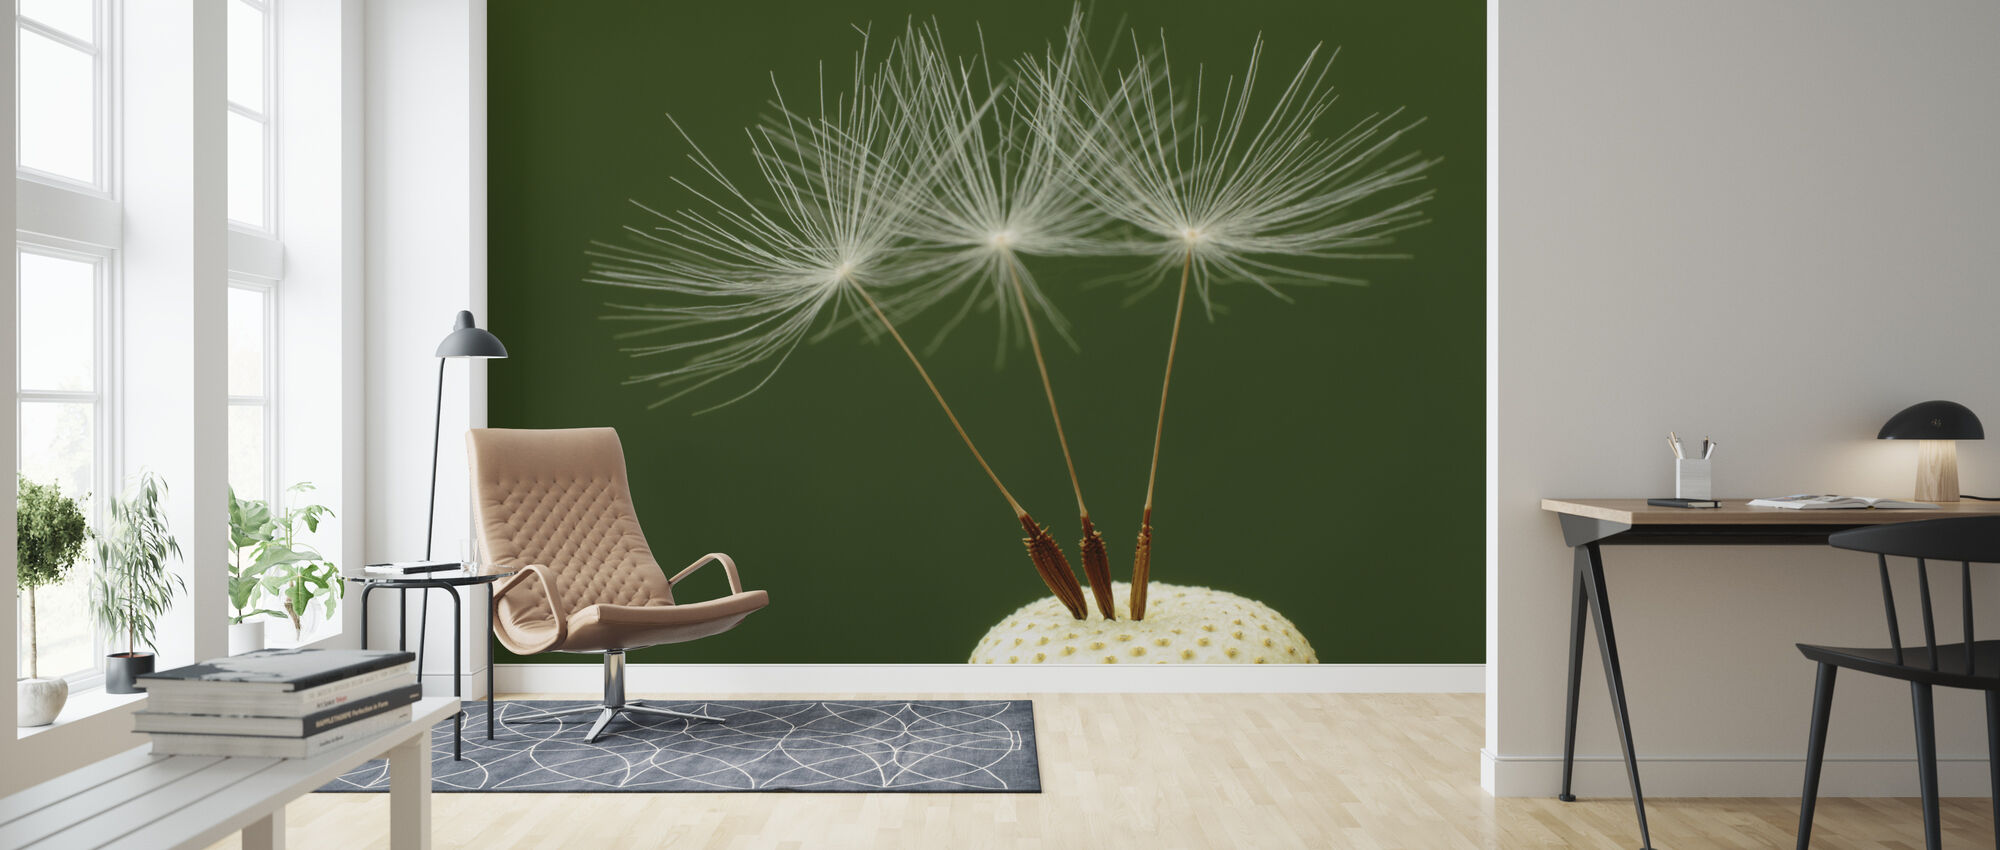 Three Dandelion Seeds - Wallpaper - Living Room